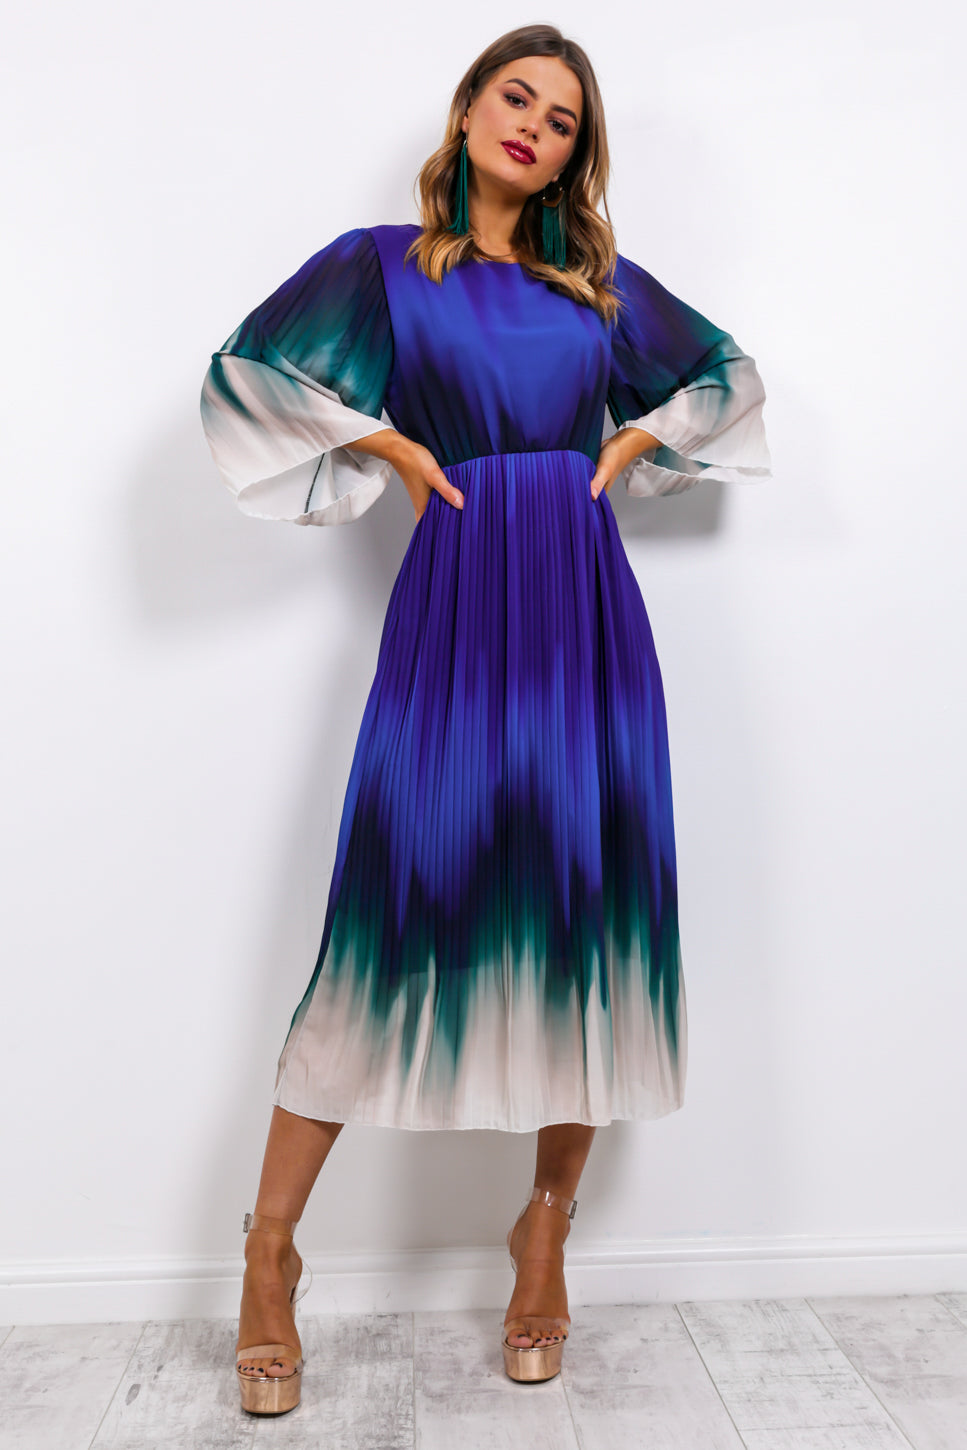 https://cdn.shopify.com/s/files/1/0062/6661/7925/files/product-video-we_aim_to_pleat-dress-in-blue-ombre.mp4?5932